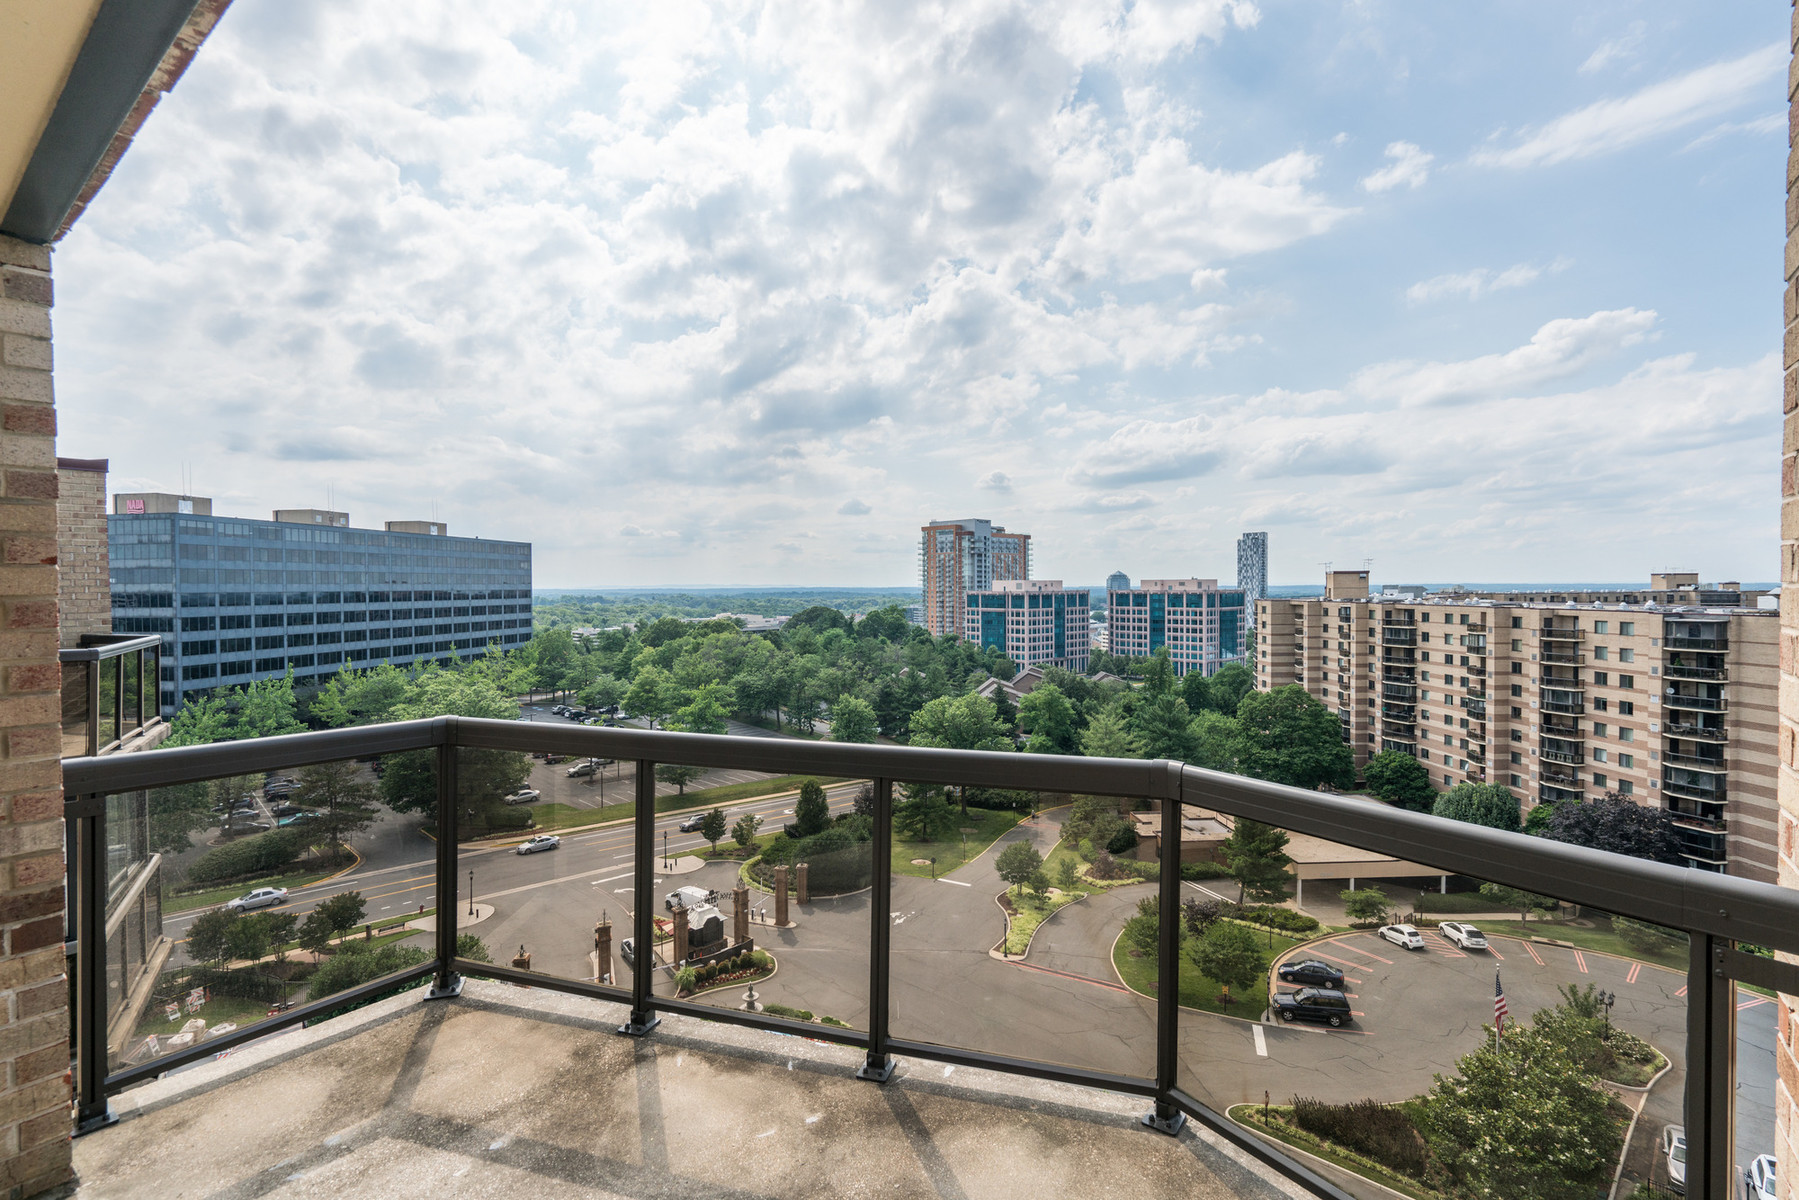 Additional photo for property listing at The Rotonda 8340 Greensboro Dr 1021 麦克林, 弗吉尼亚州 22102 美国